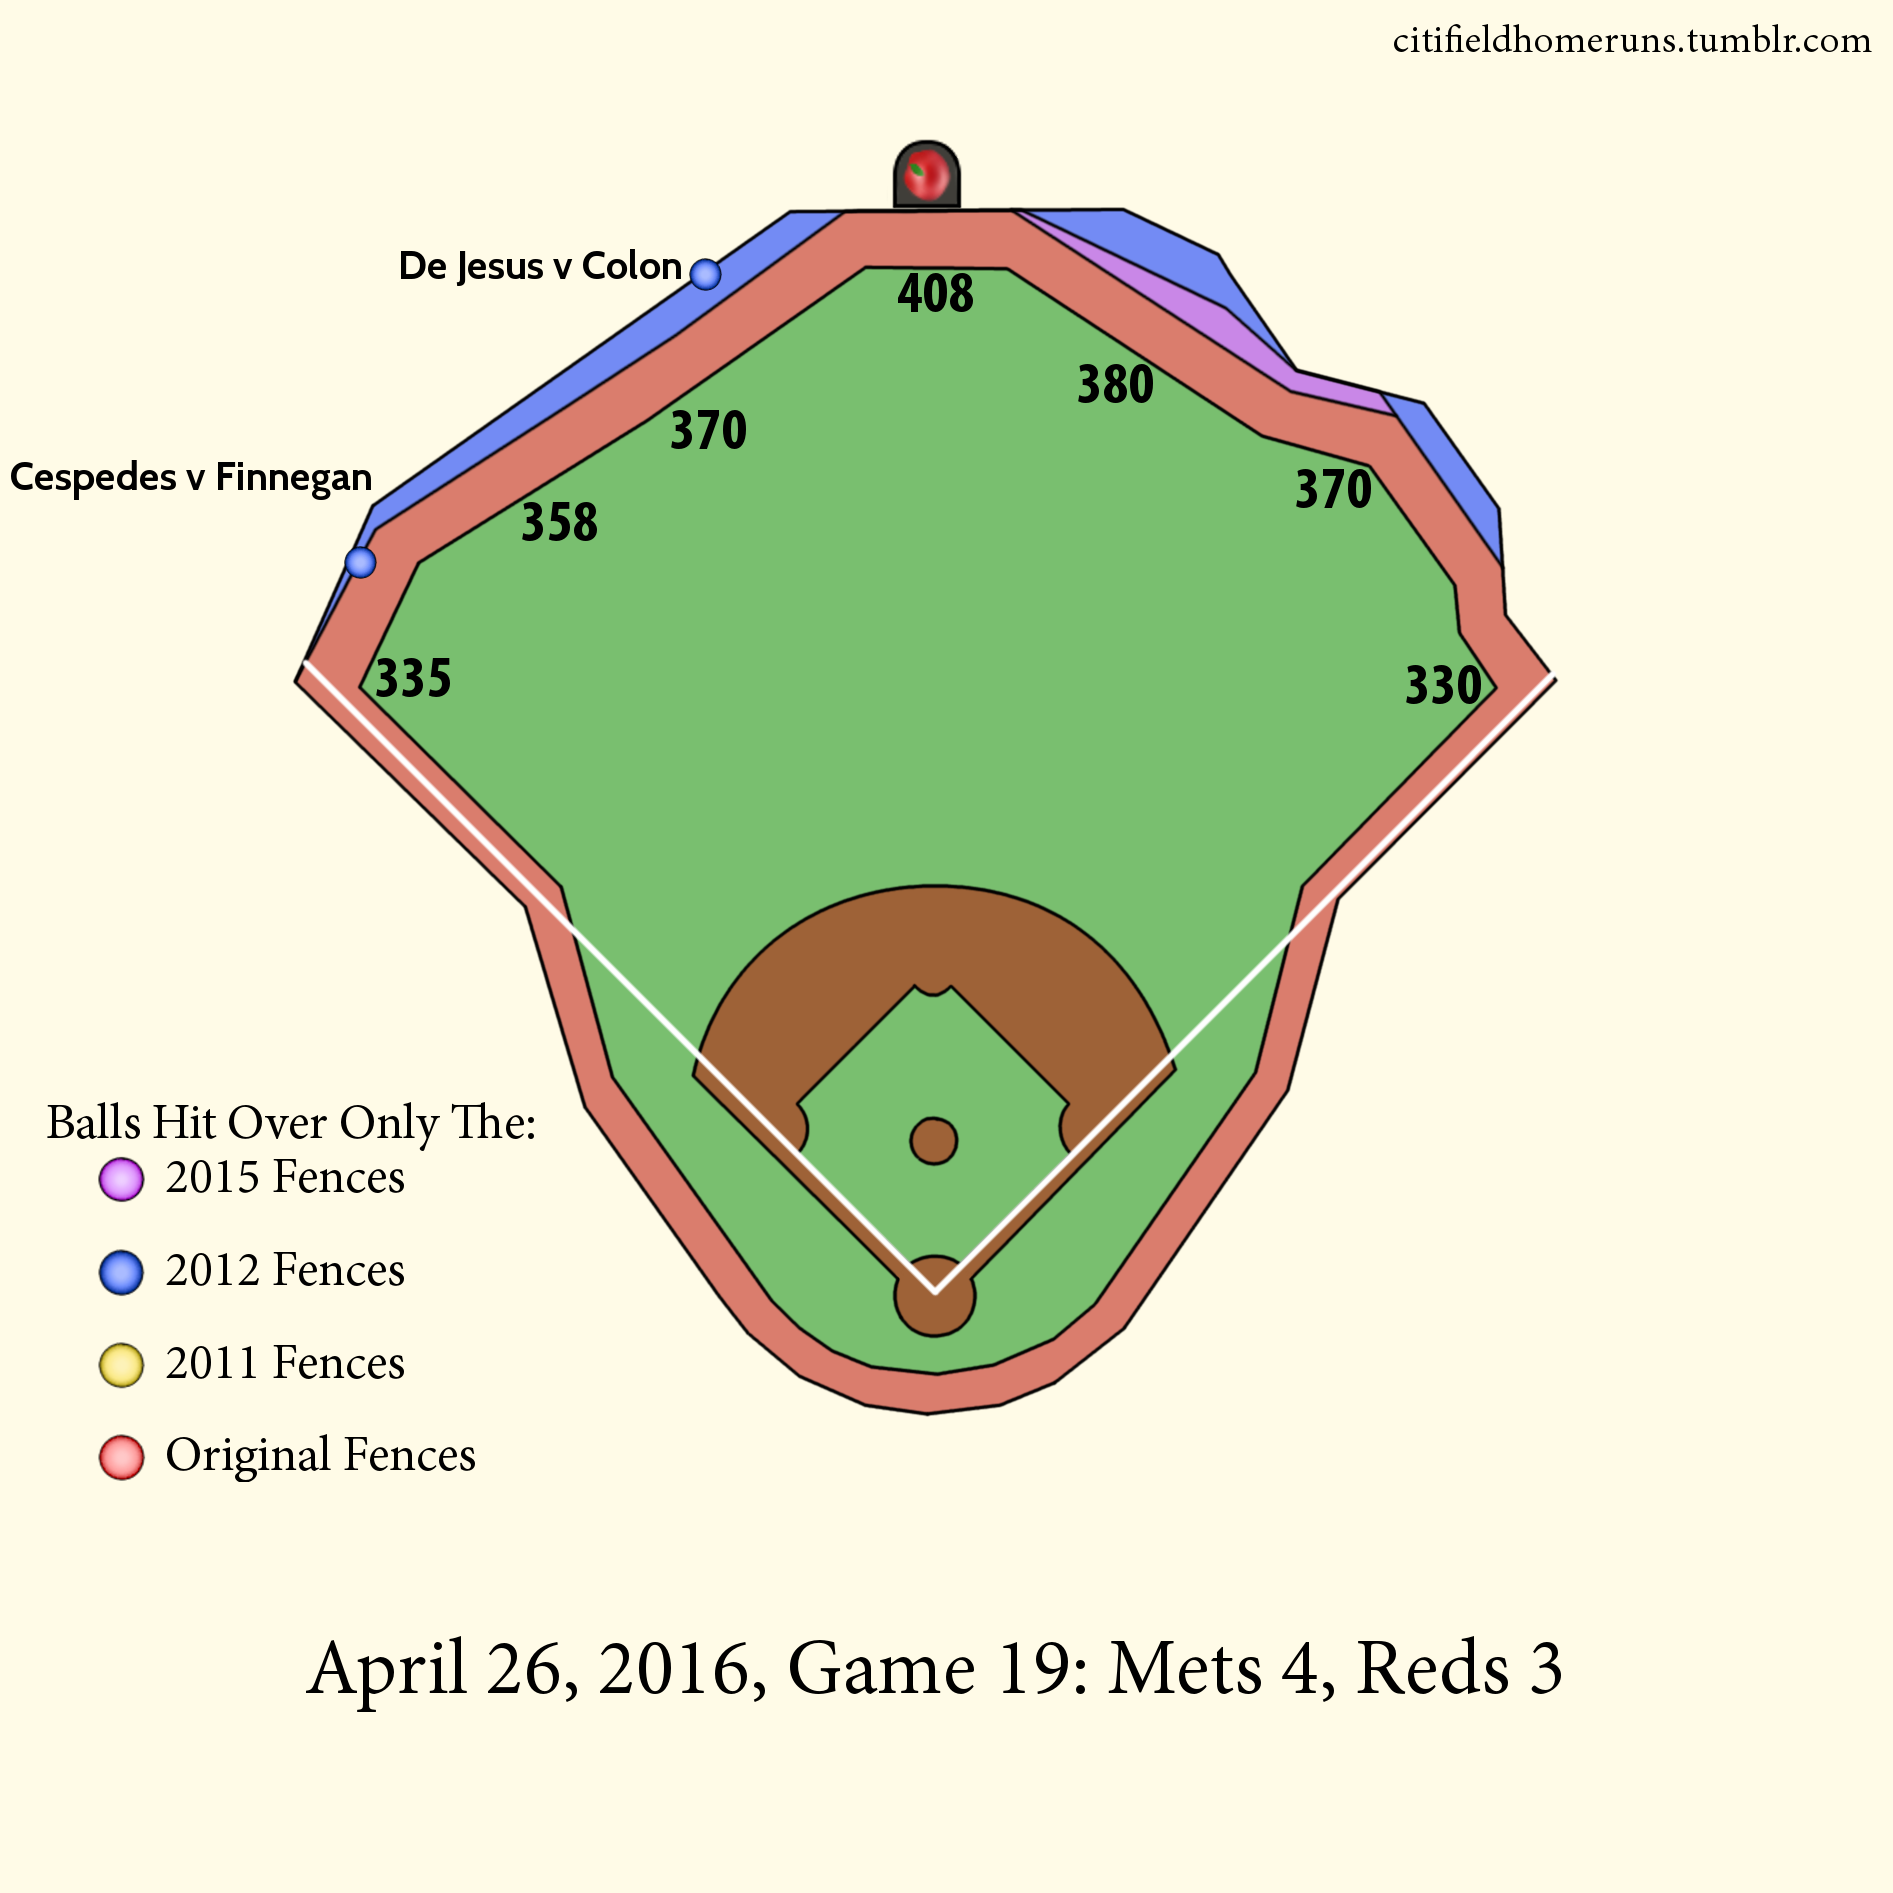 9.  De Jesus v Colon: 1 Out, 1-0 Two Seamer, 2 Runs.  10.  Cespedes v Finnegan: 1 Out, 0-0 Four Seamer, 3 Runs.